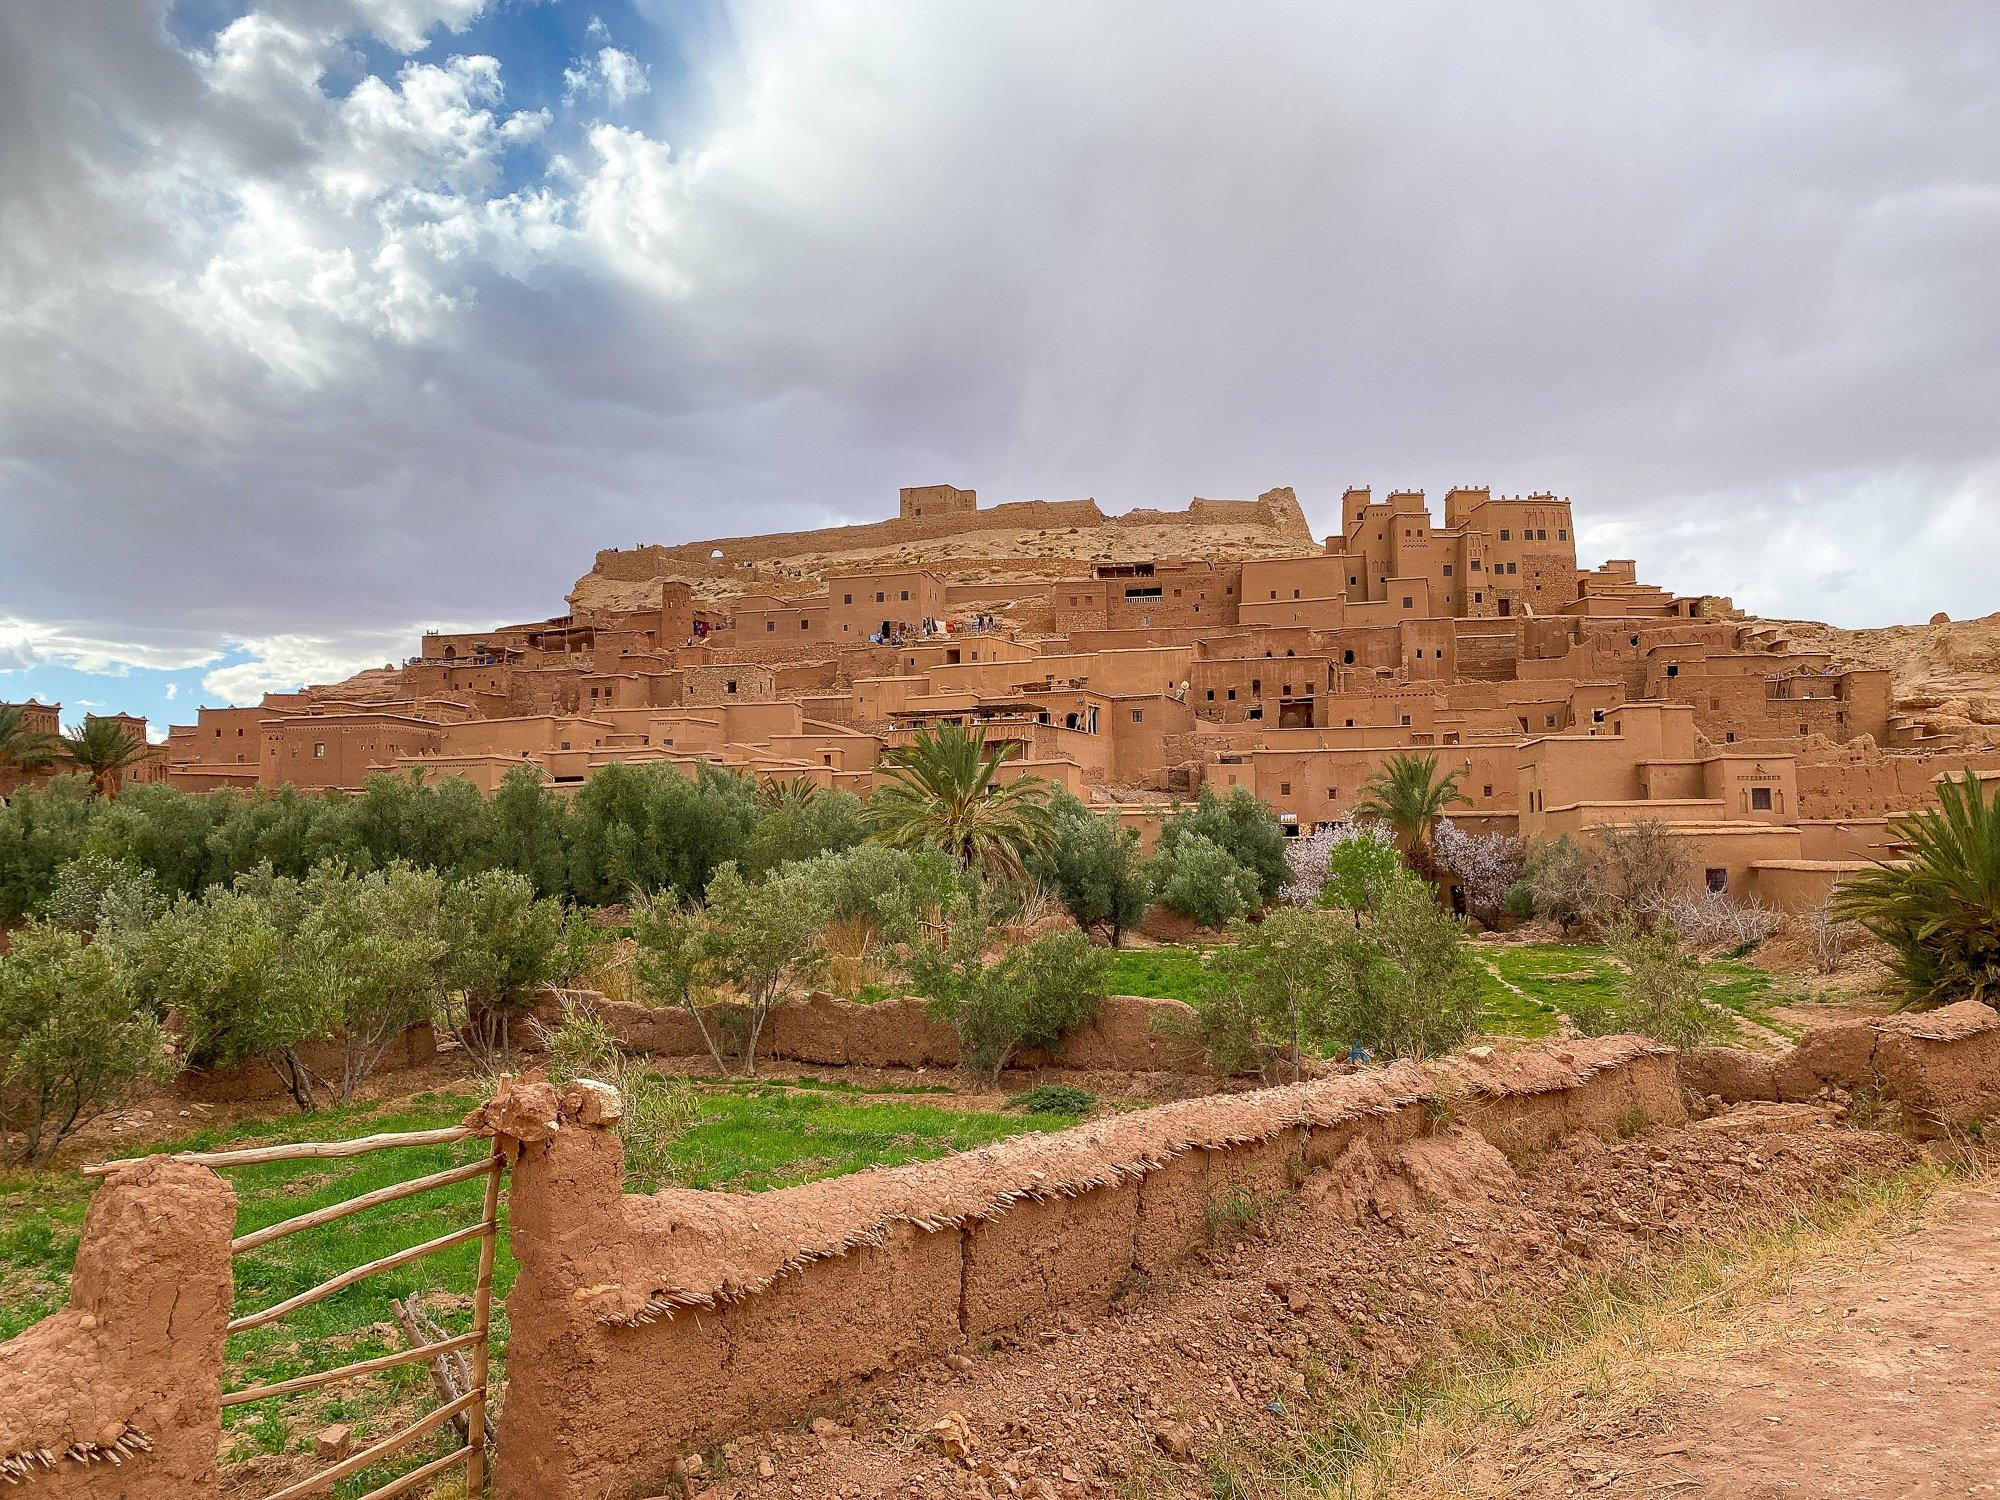 Aït Ben Haddou Village, UNESCO World Heritage Site